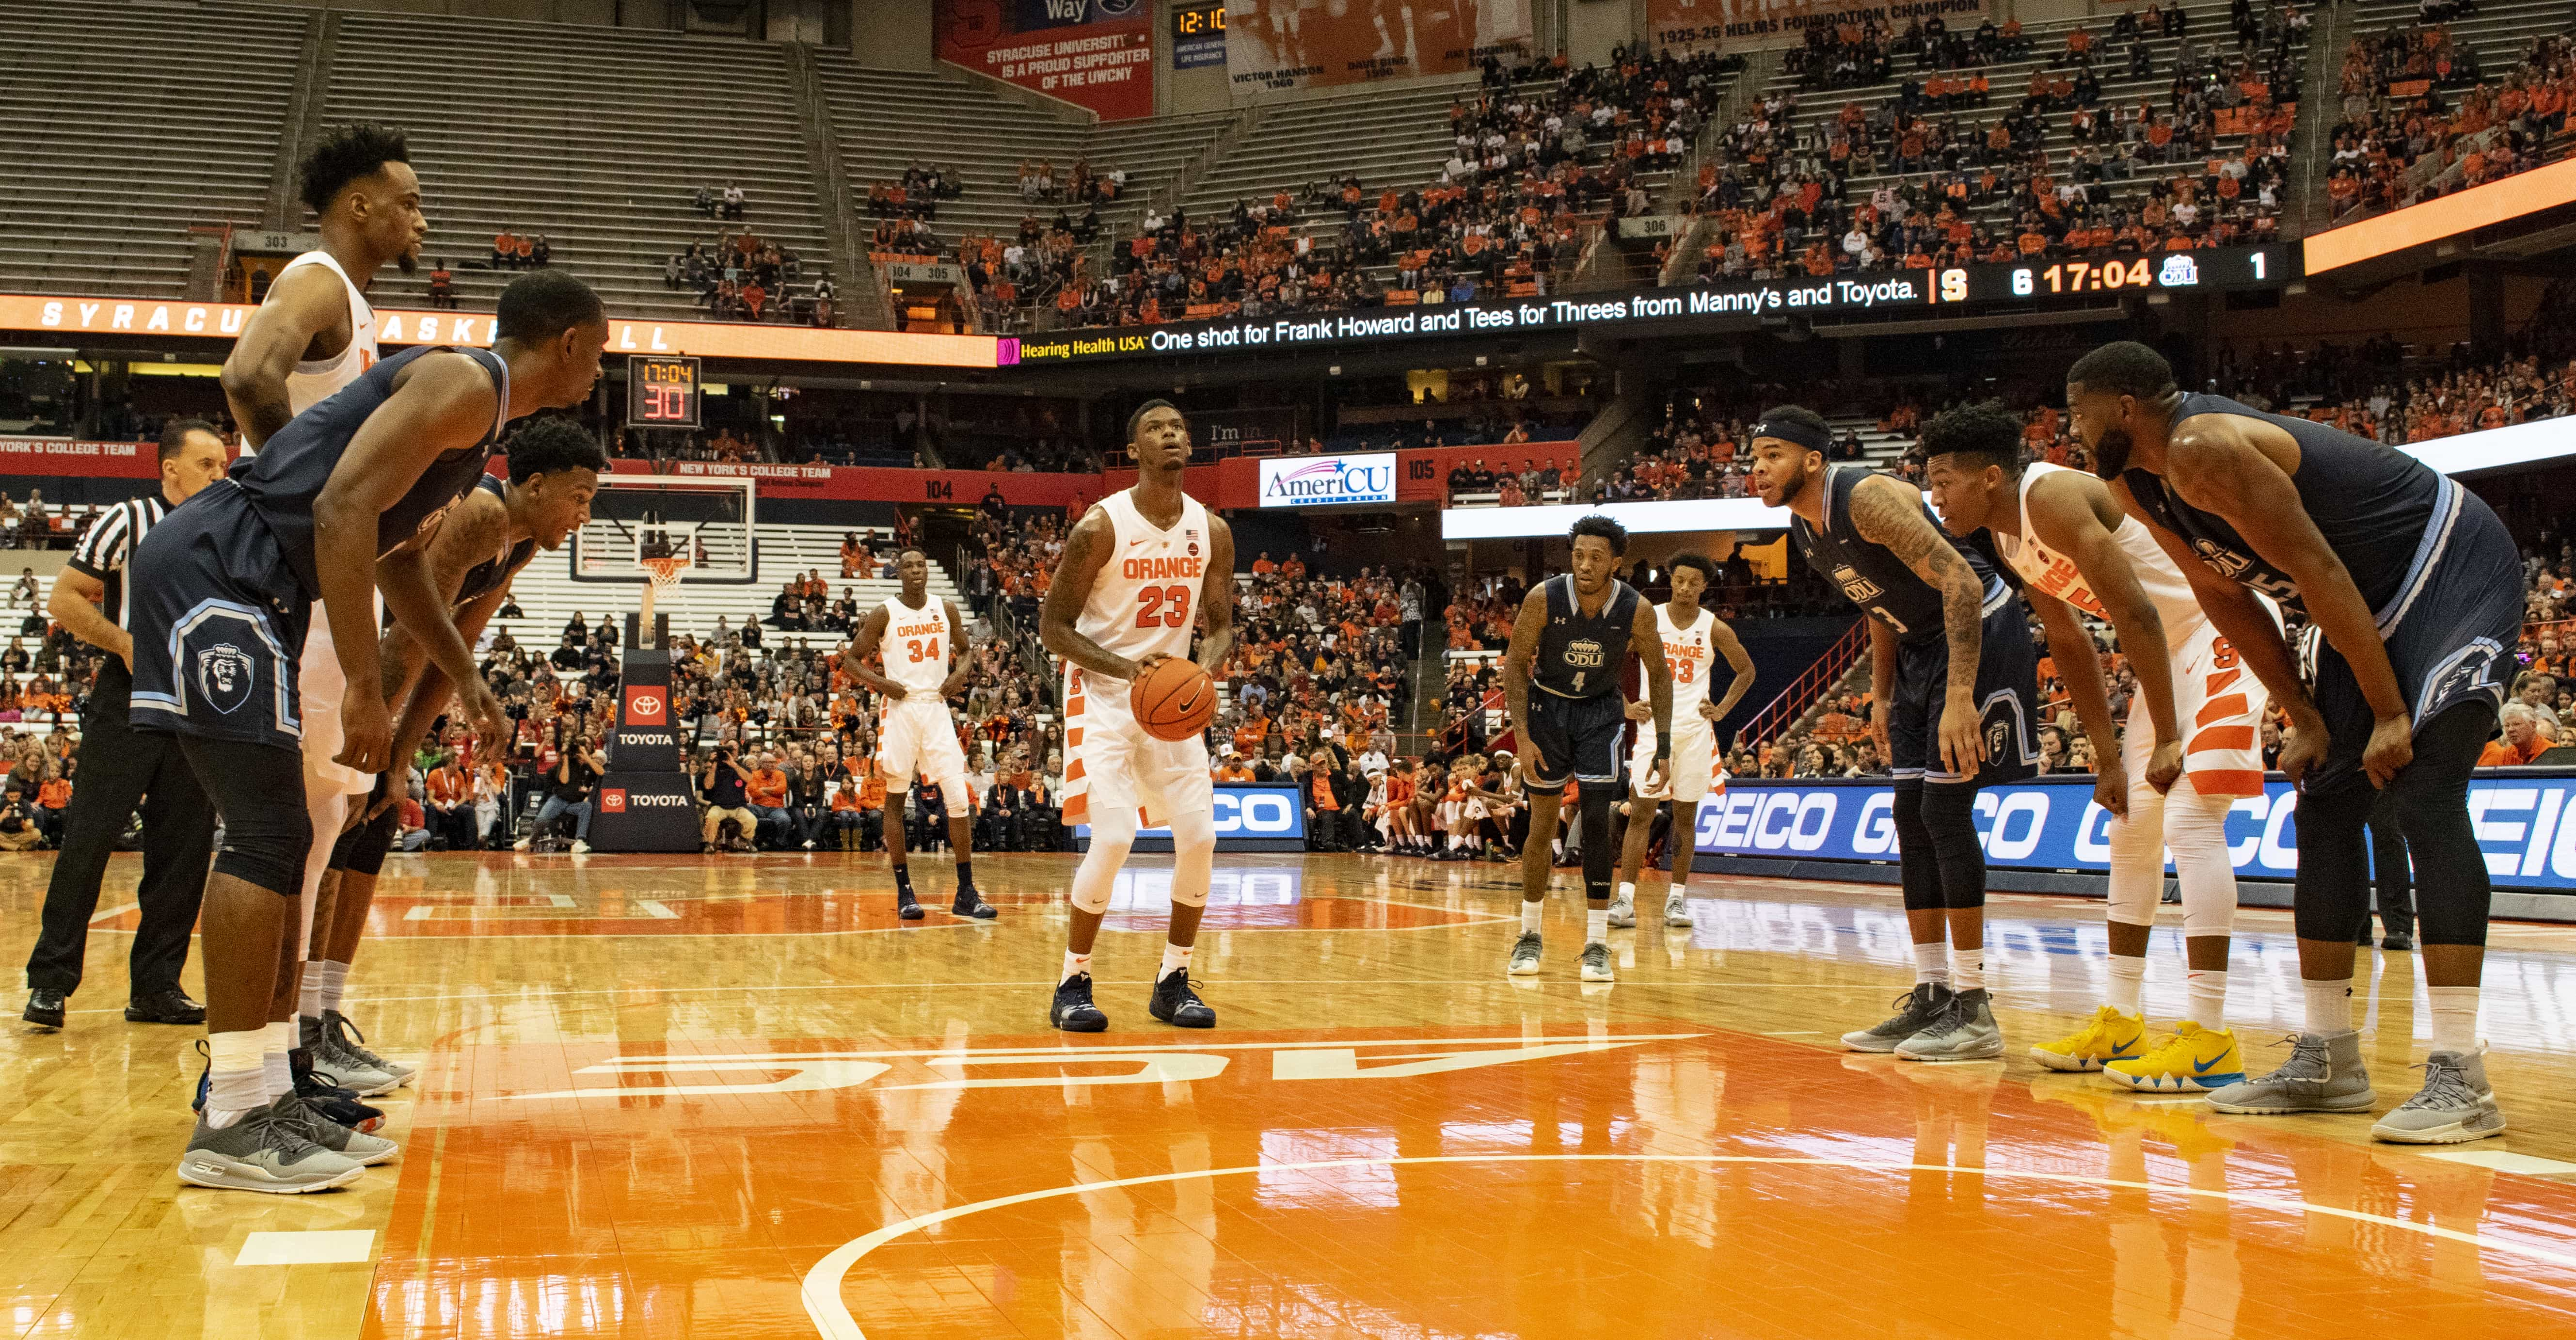 Frank Howard shoots a free throw during SU's loss to Old Dominion on Dec. 15, 2018, at the Carrier Dome.